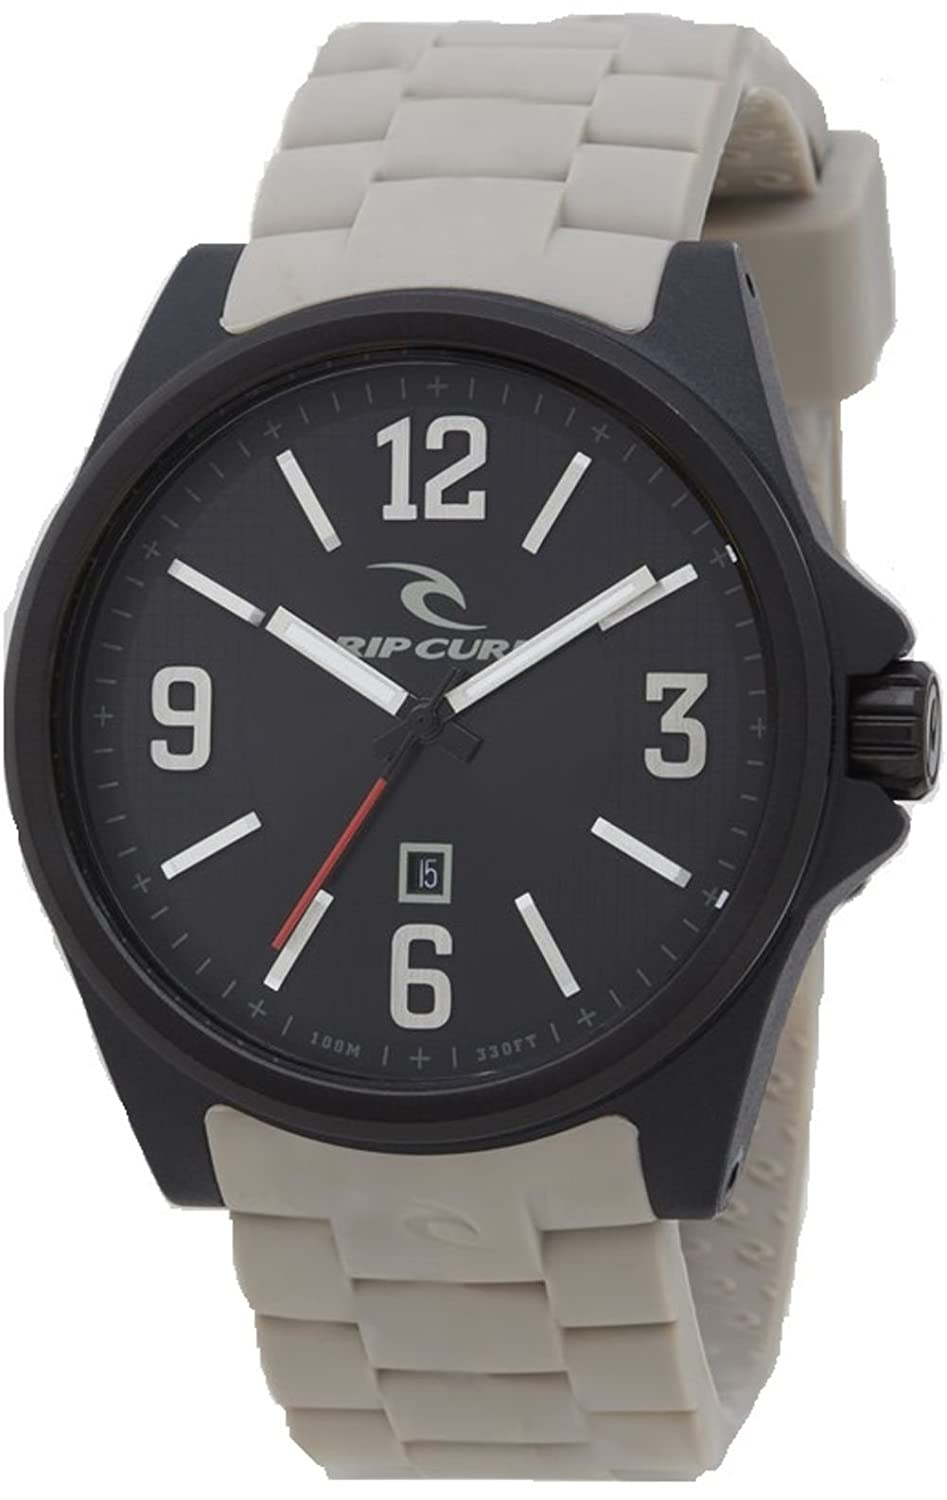 Rip Curl COVERT GUNMETAL - MAN - Color: DESERT - Size: TU